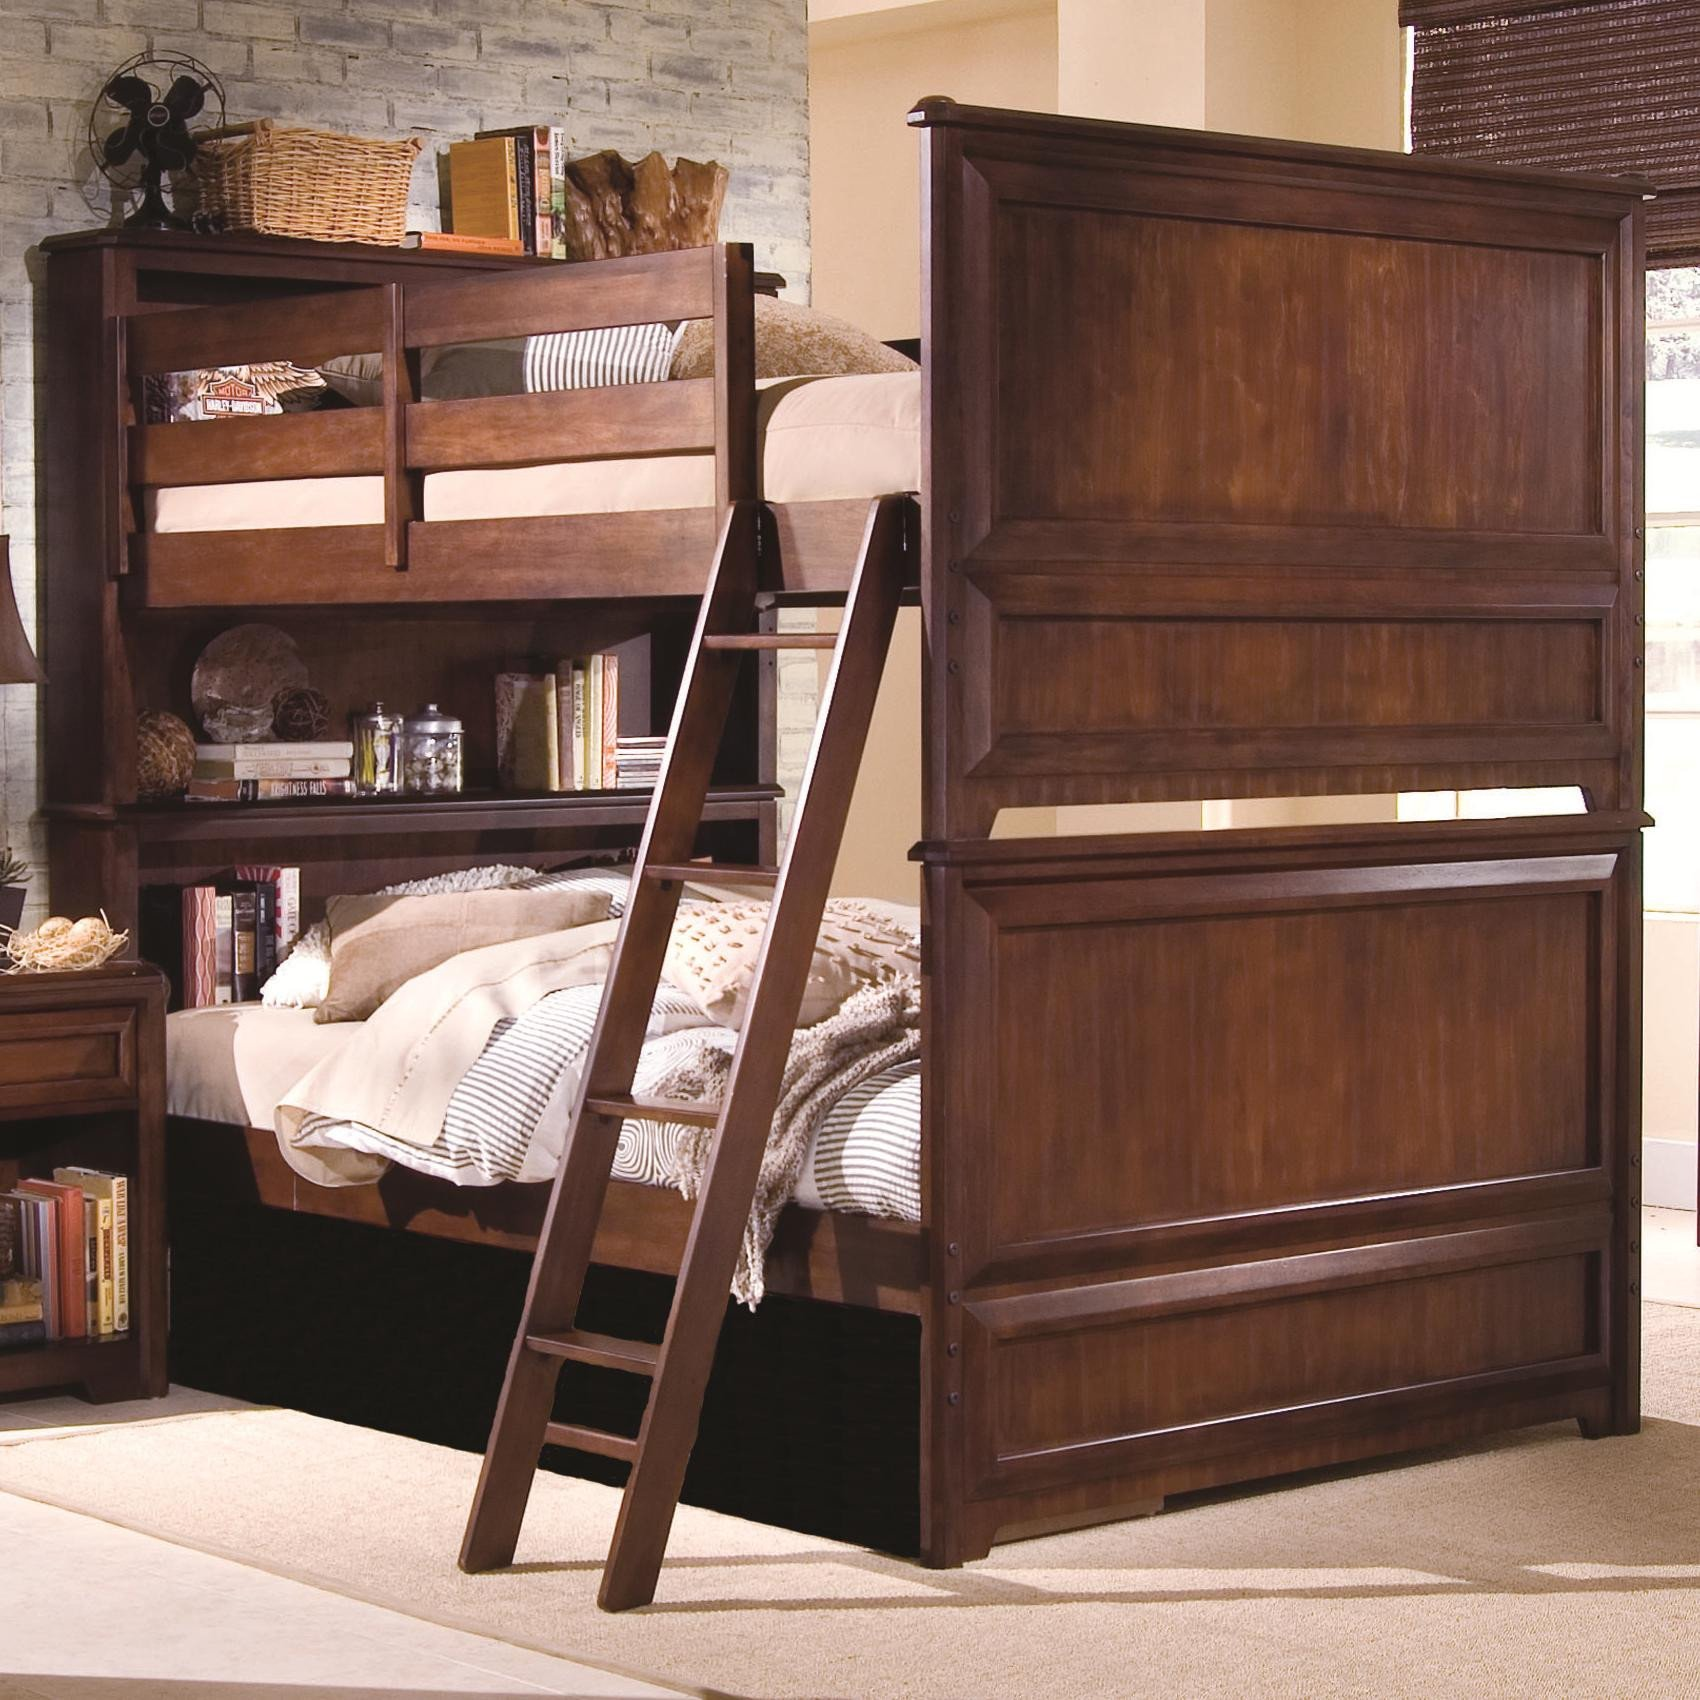 Paul Bunyan Bedroom Set Awesome Lea Industries Elite Expressions Full Over Full Bunkbed